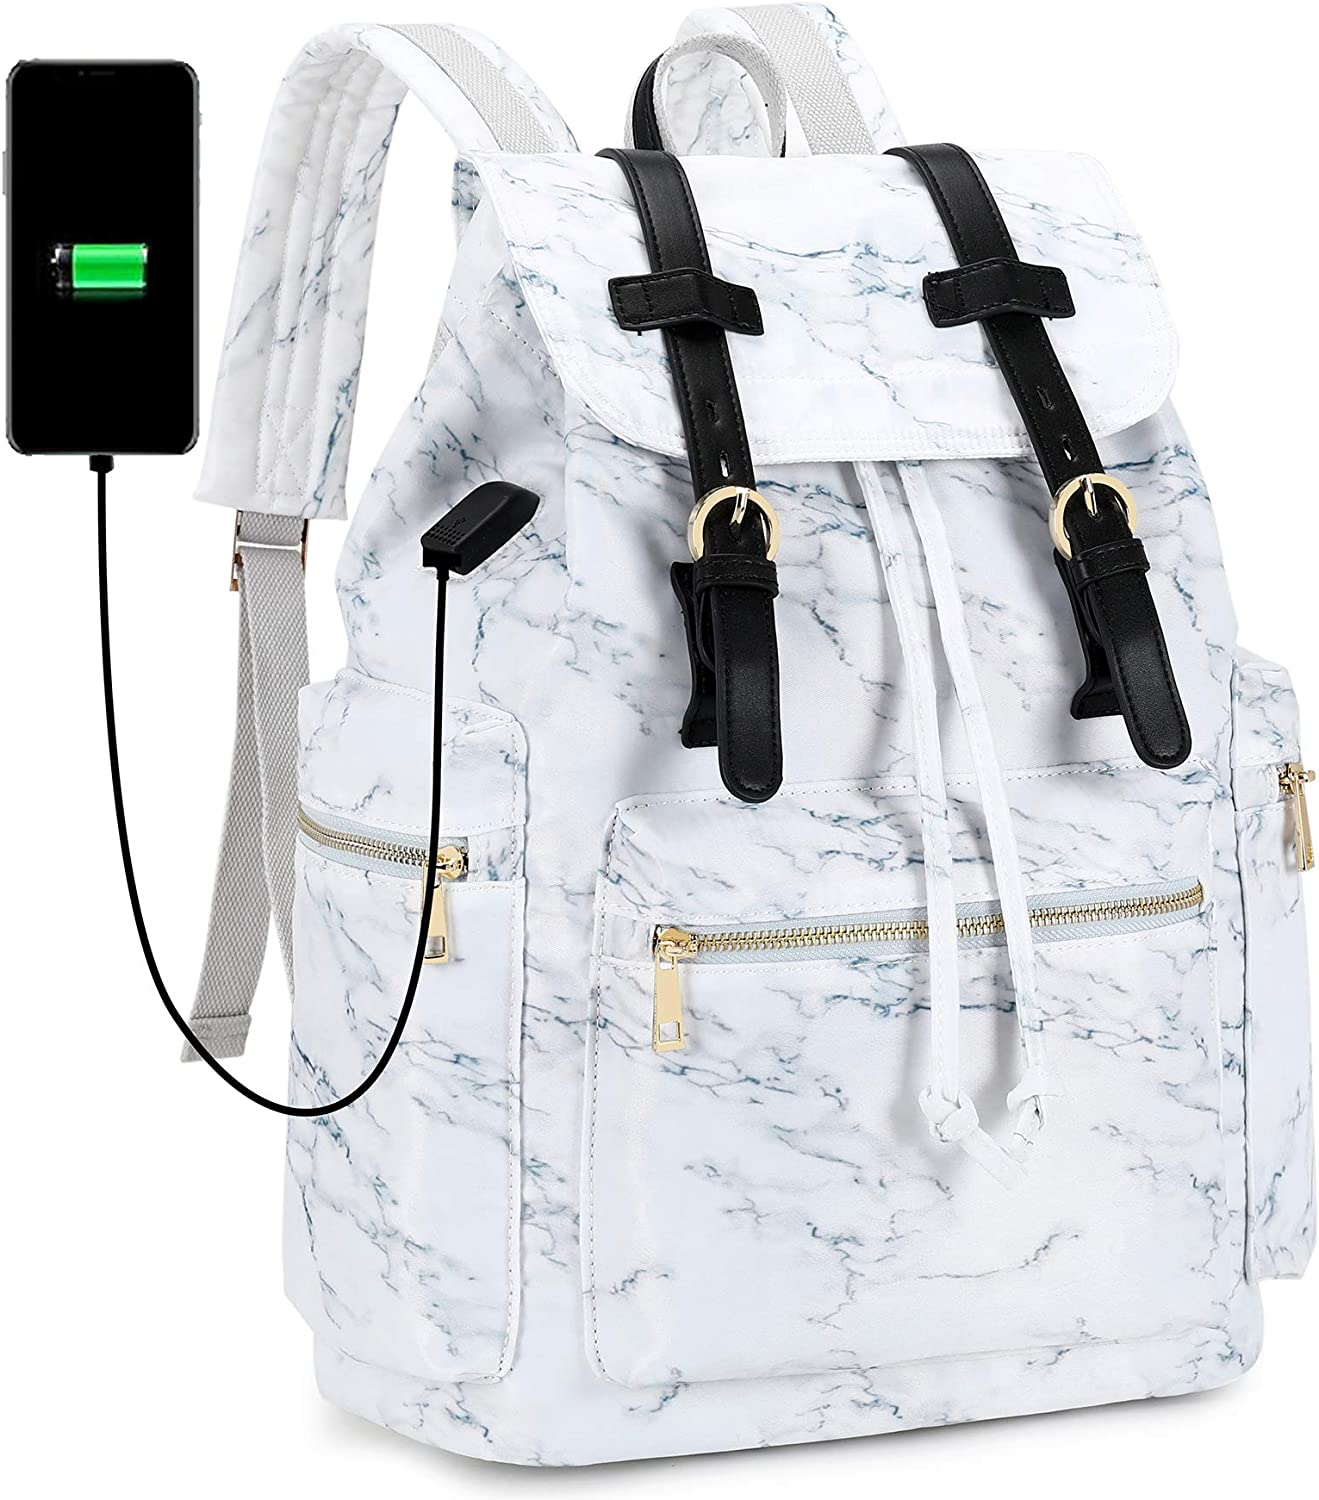 Travel Laptop Backpack for Women and Mens School College Bookbag with USB Charge Port for Notebook with Trolley Sleeve on Suitcase (Marble white)